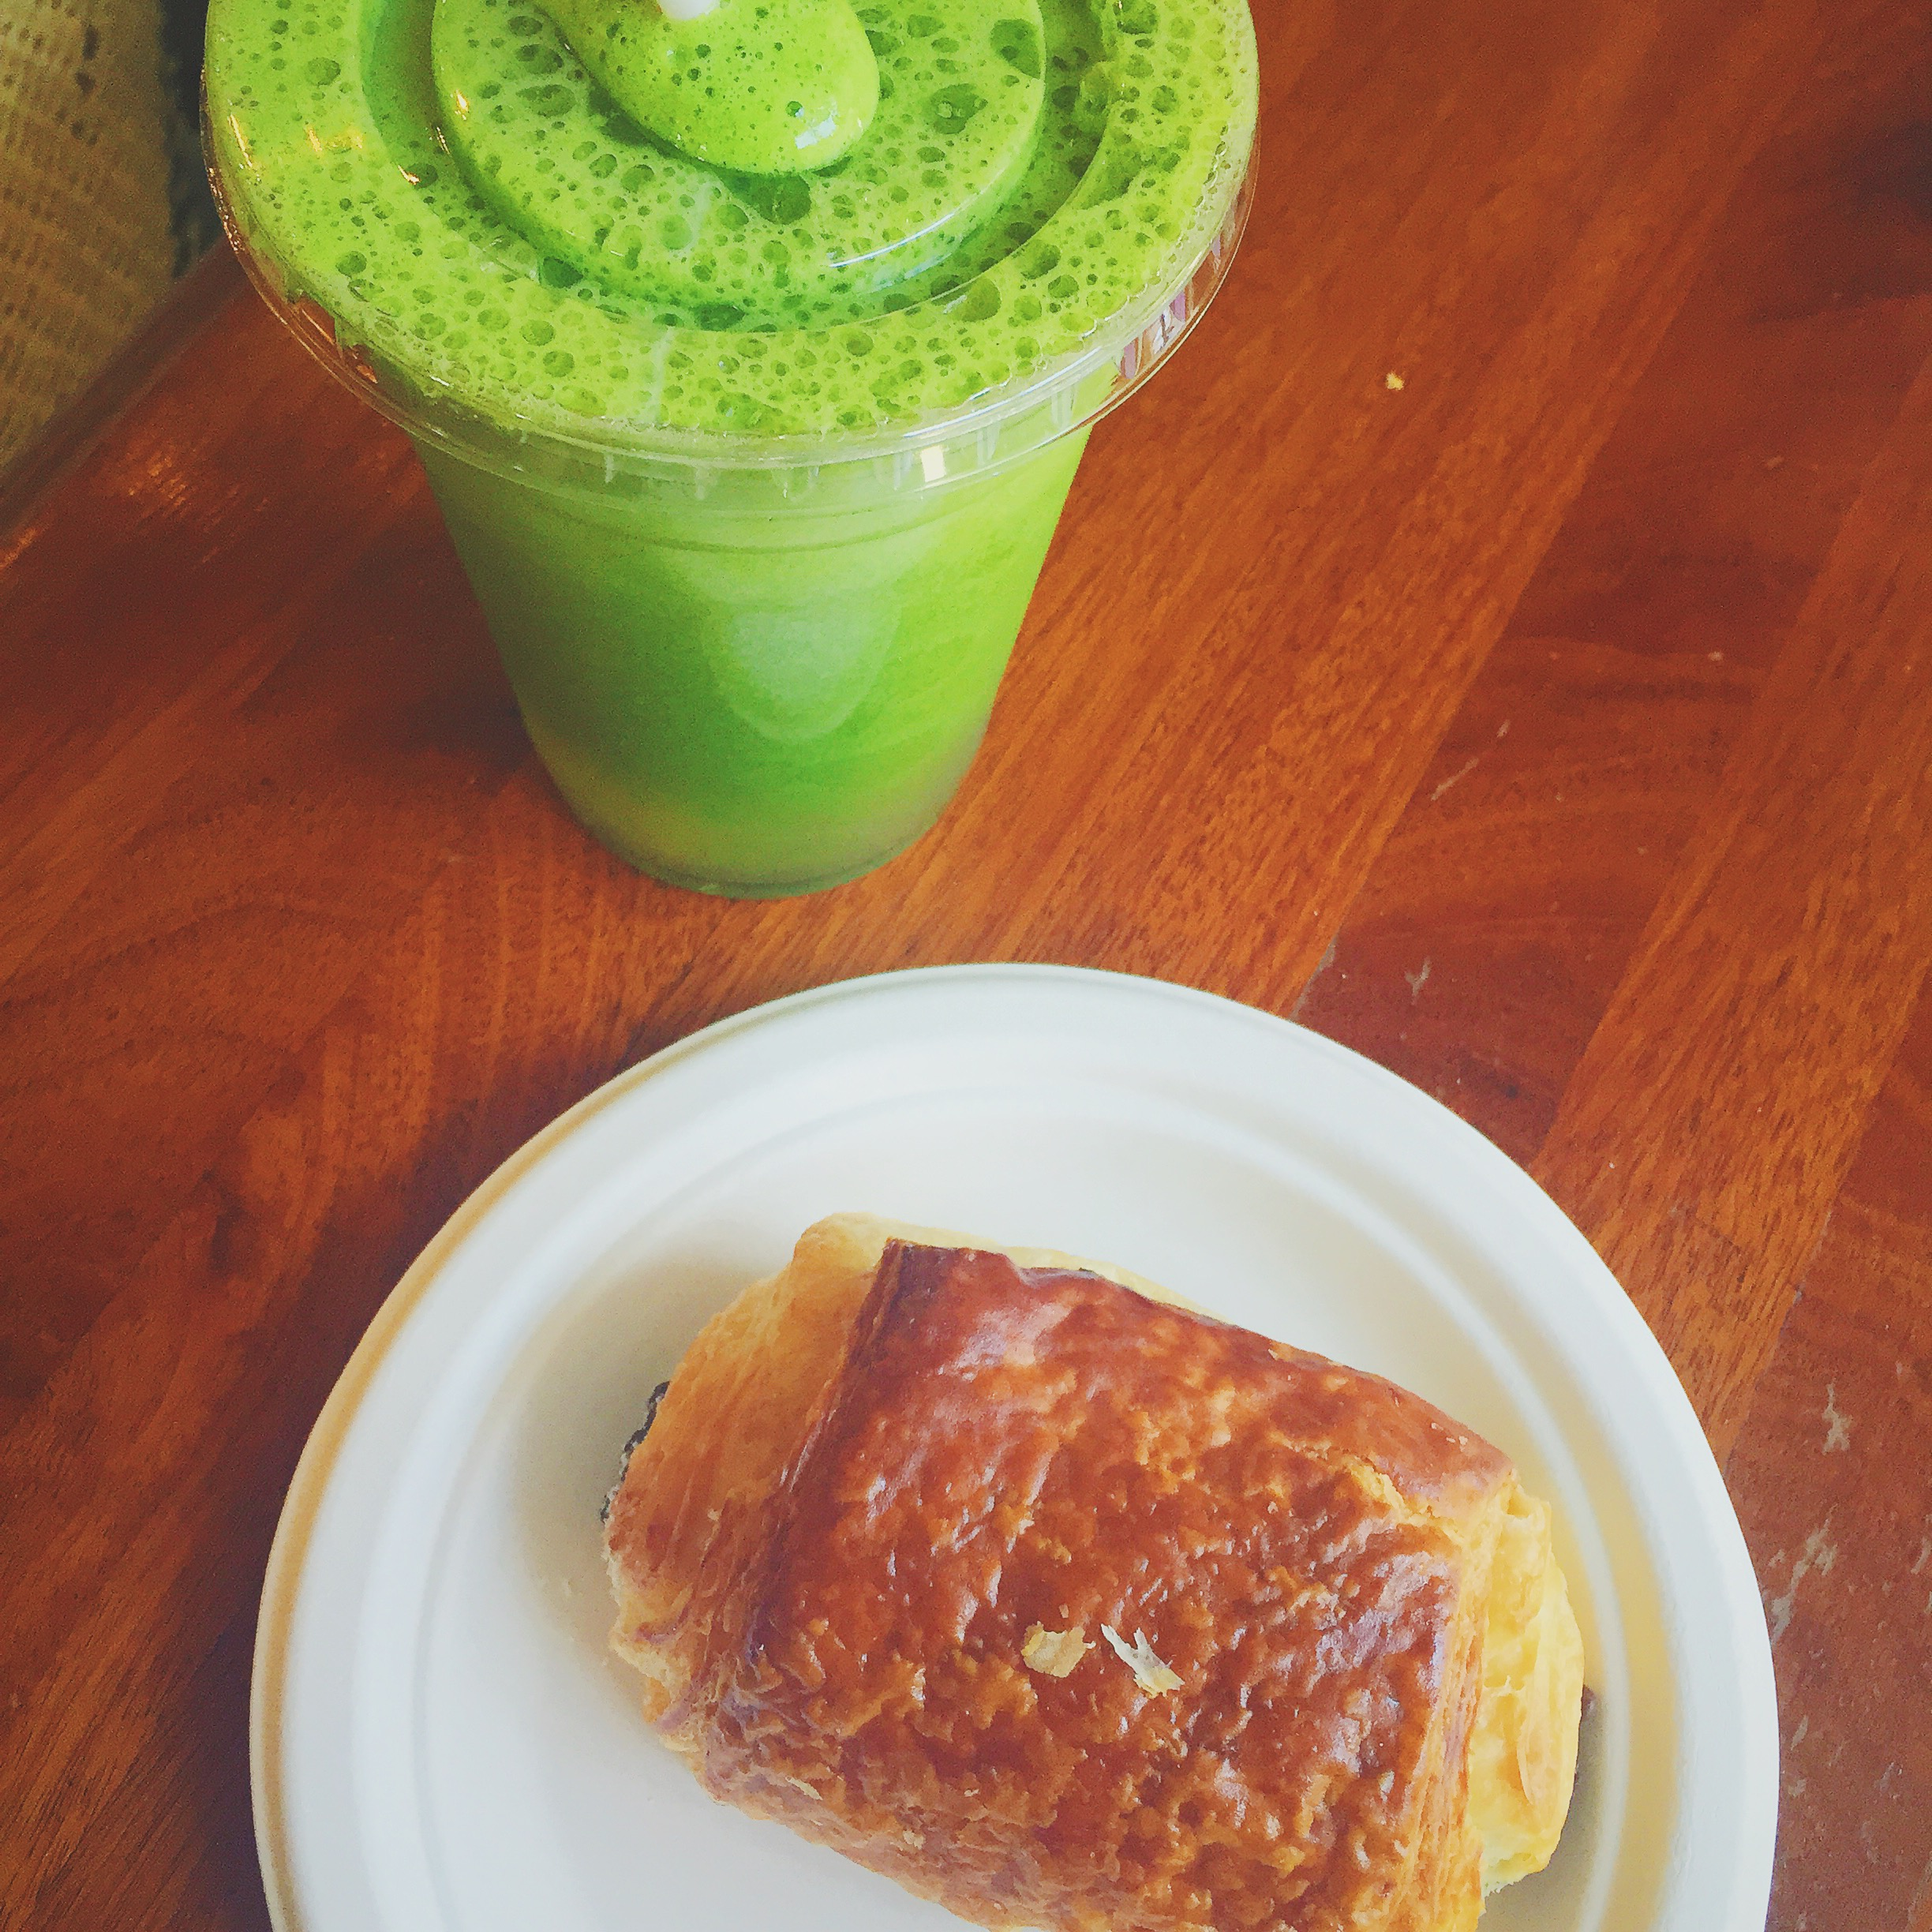 Mint Julep green juice and a chocolate croissant from Petite Amelie, New Orleans, La